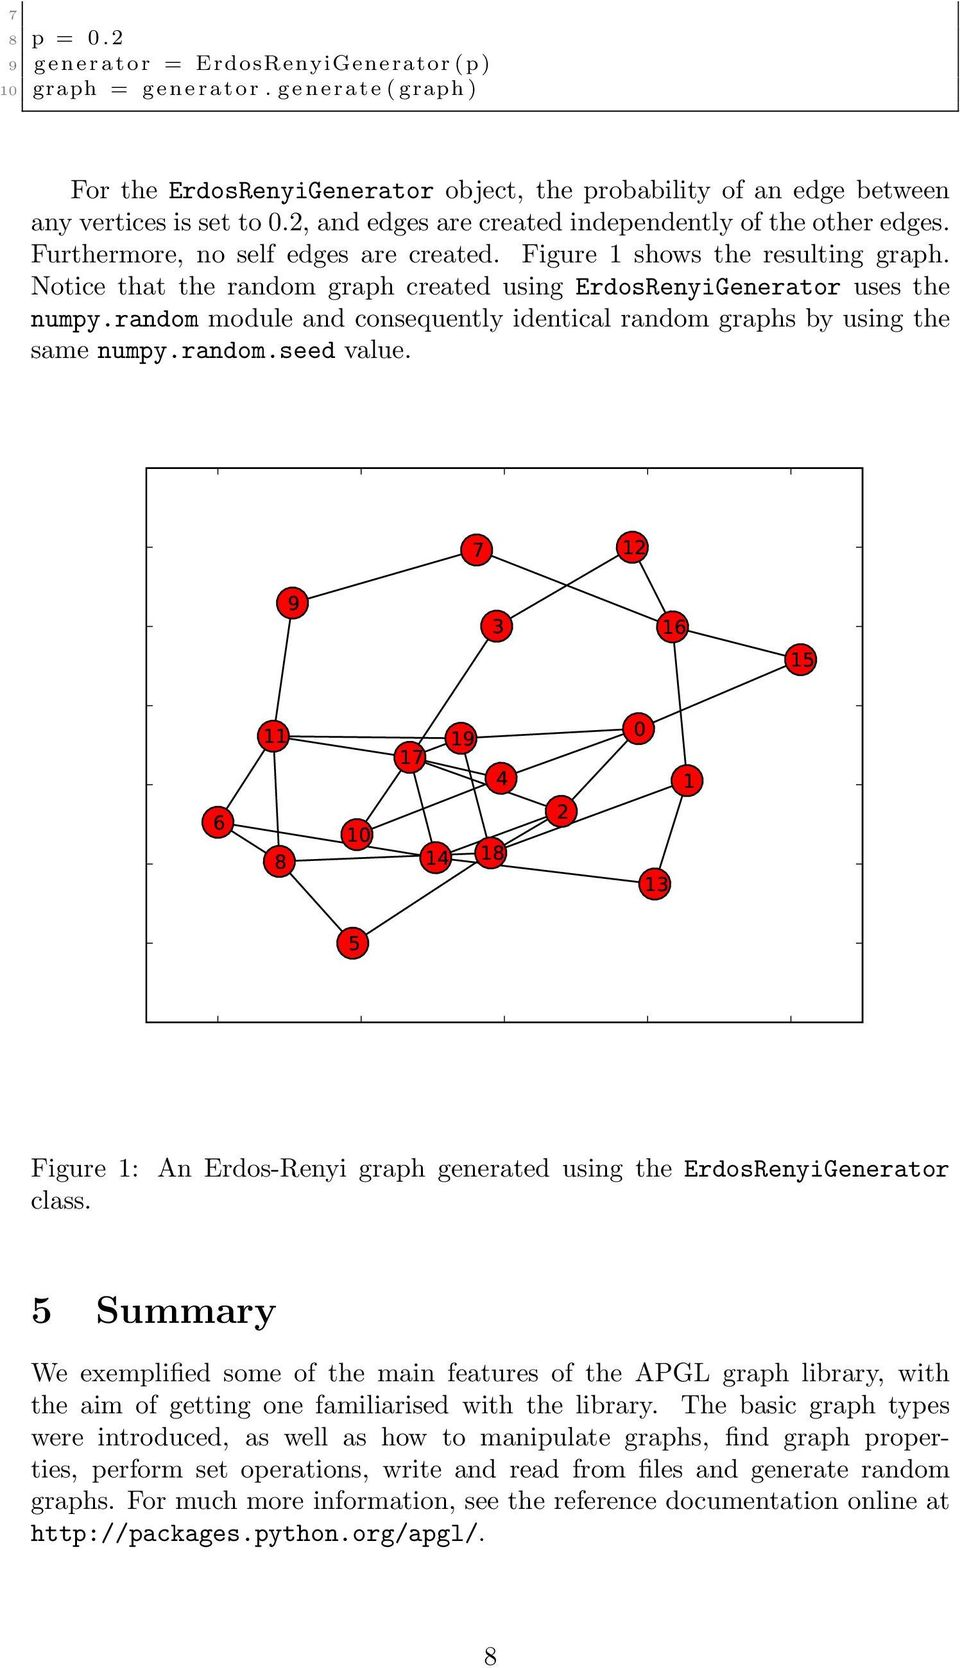 Furthermore, no self edges are created. Figure 1 shows the resulting graph. Notice that the random graph created using ErdosRenyiGenerator uses the numpy.